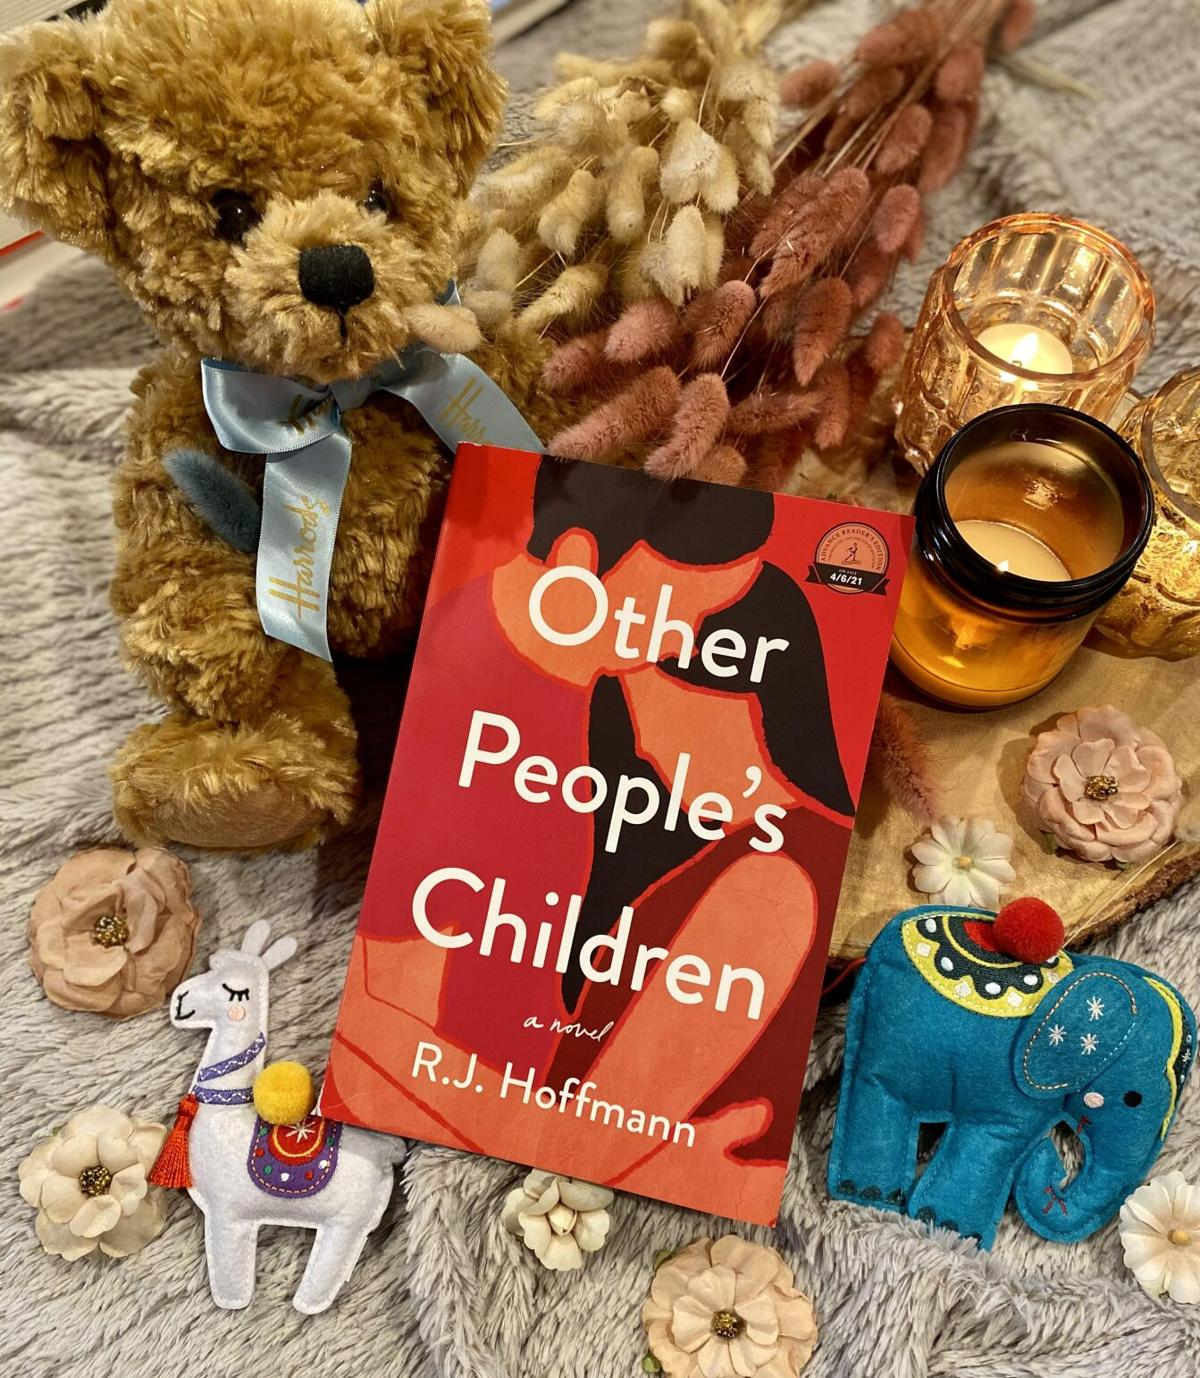 Novel Approach: Adoption and custody come into play in 'Other People's Children'